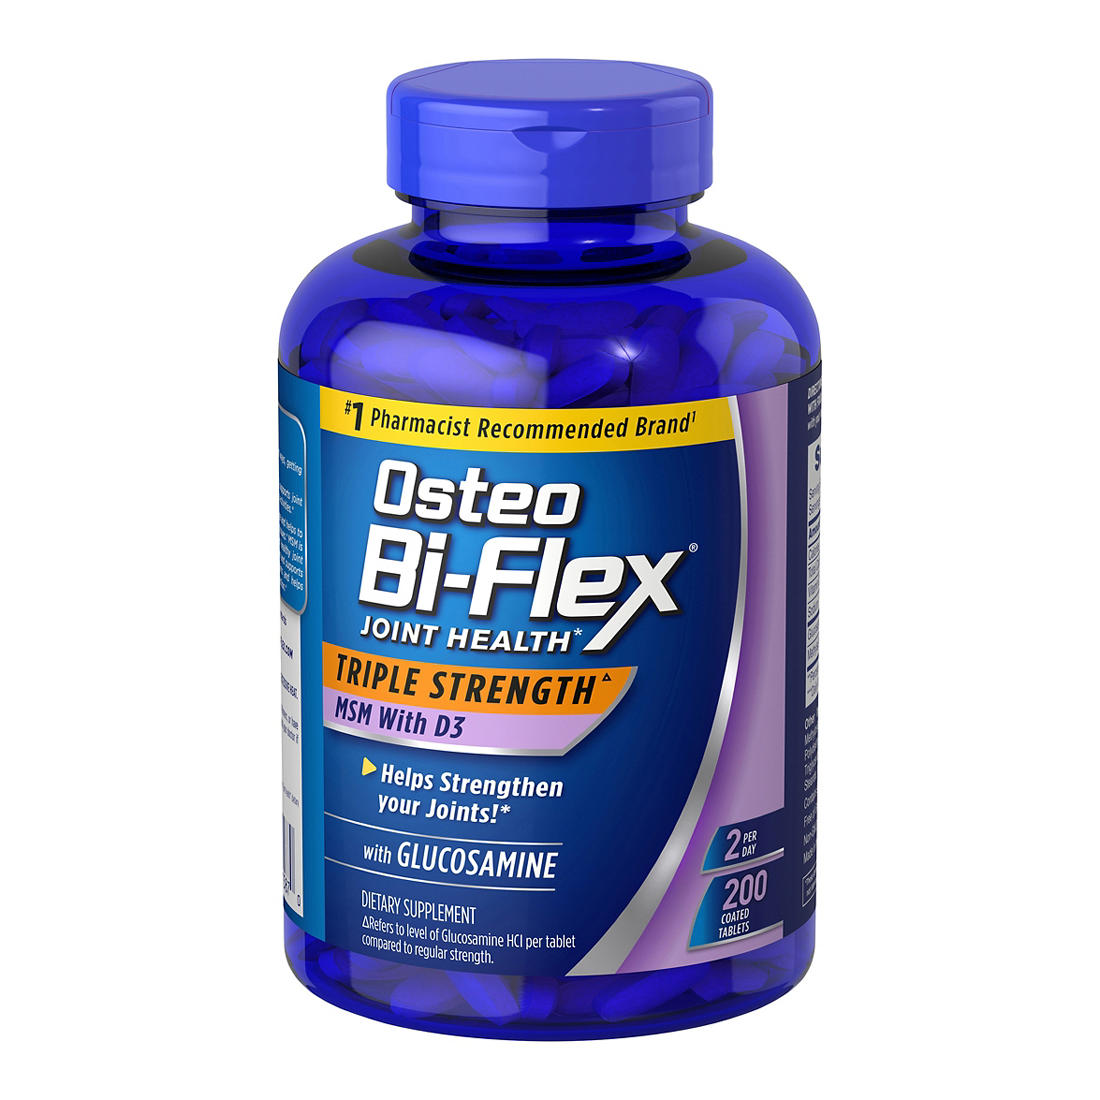 photo relating to Osteo Bi Flex Coupon Printable named Osteo Bi-Flex 1,500mg Glucosamine HCl Drugs, 200 ct.